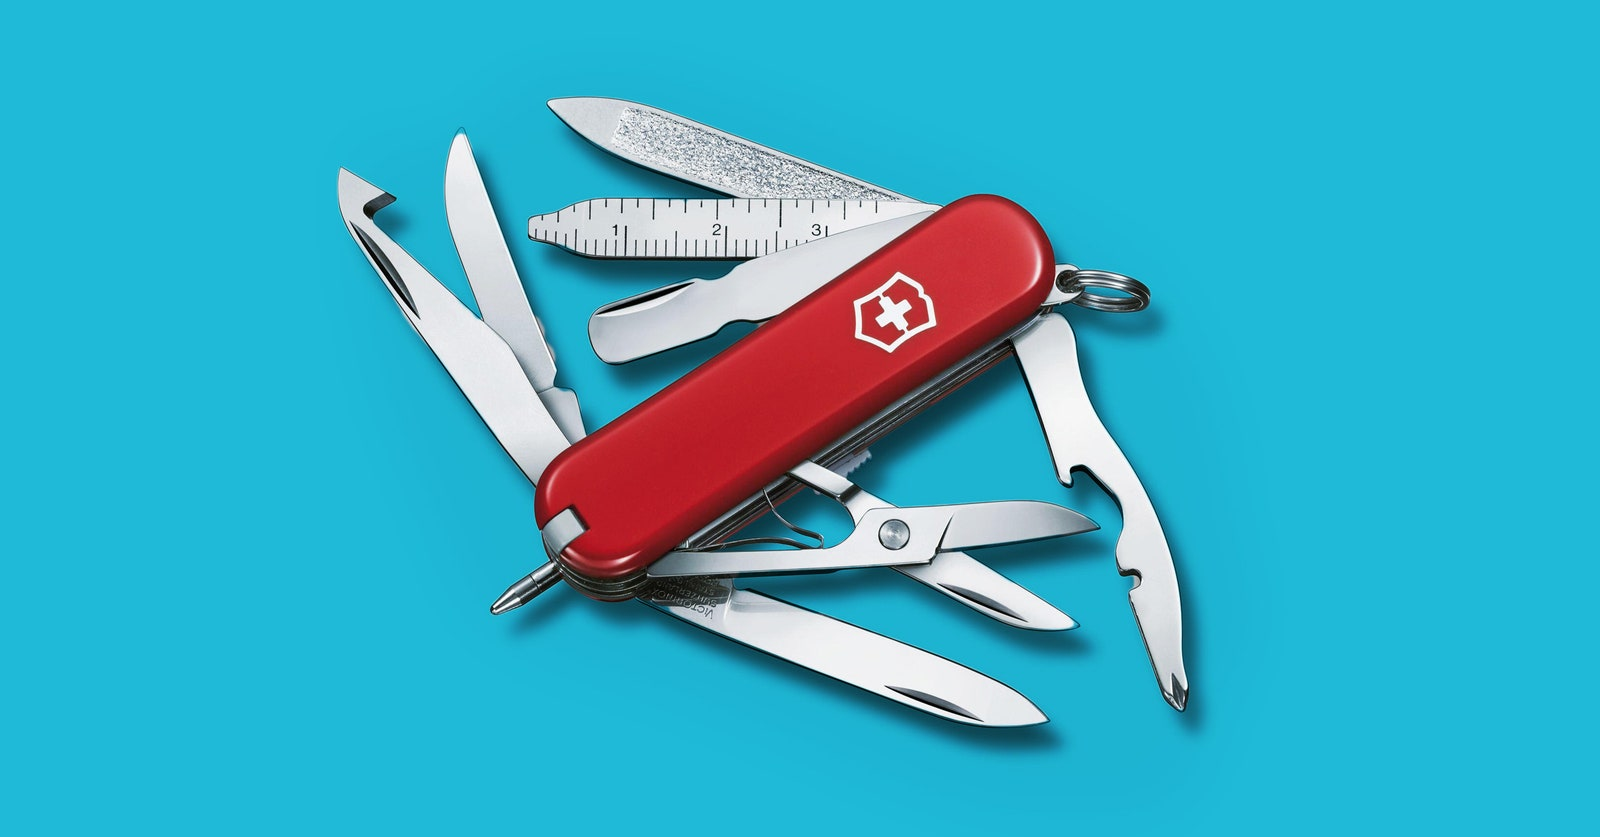 4 Best Multi-Tools for Any Task (2021)